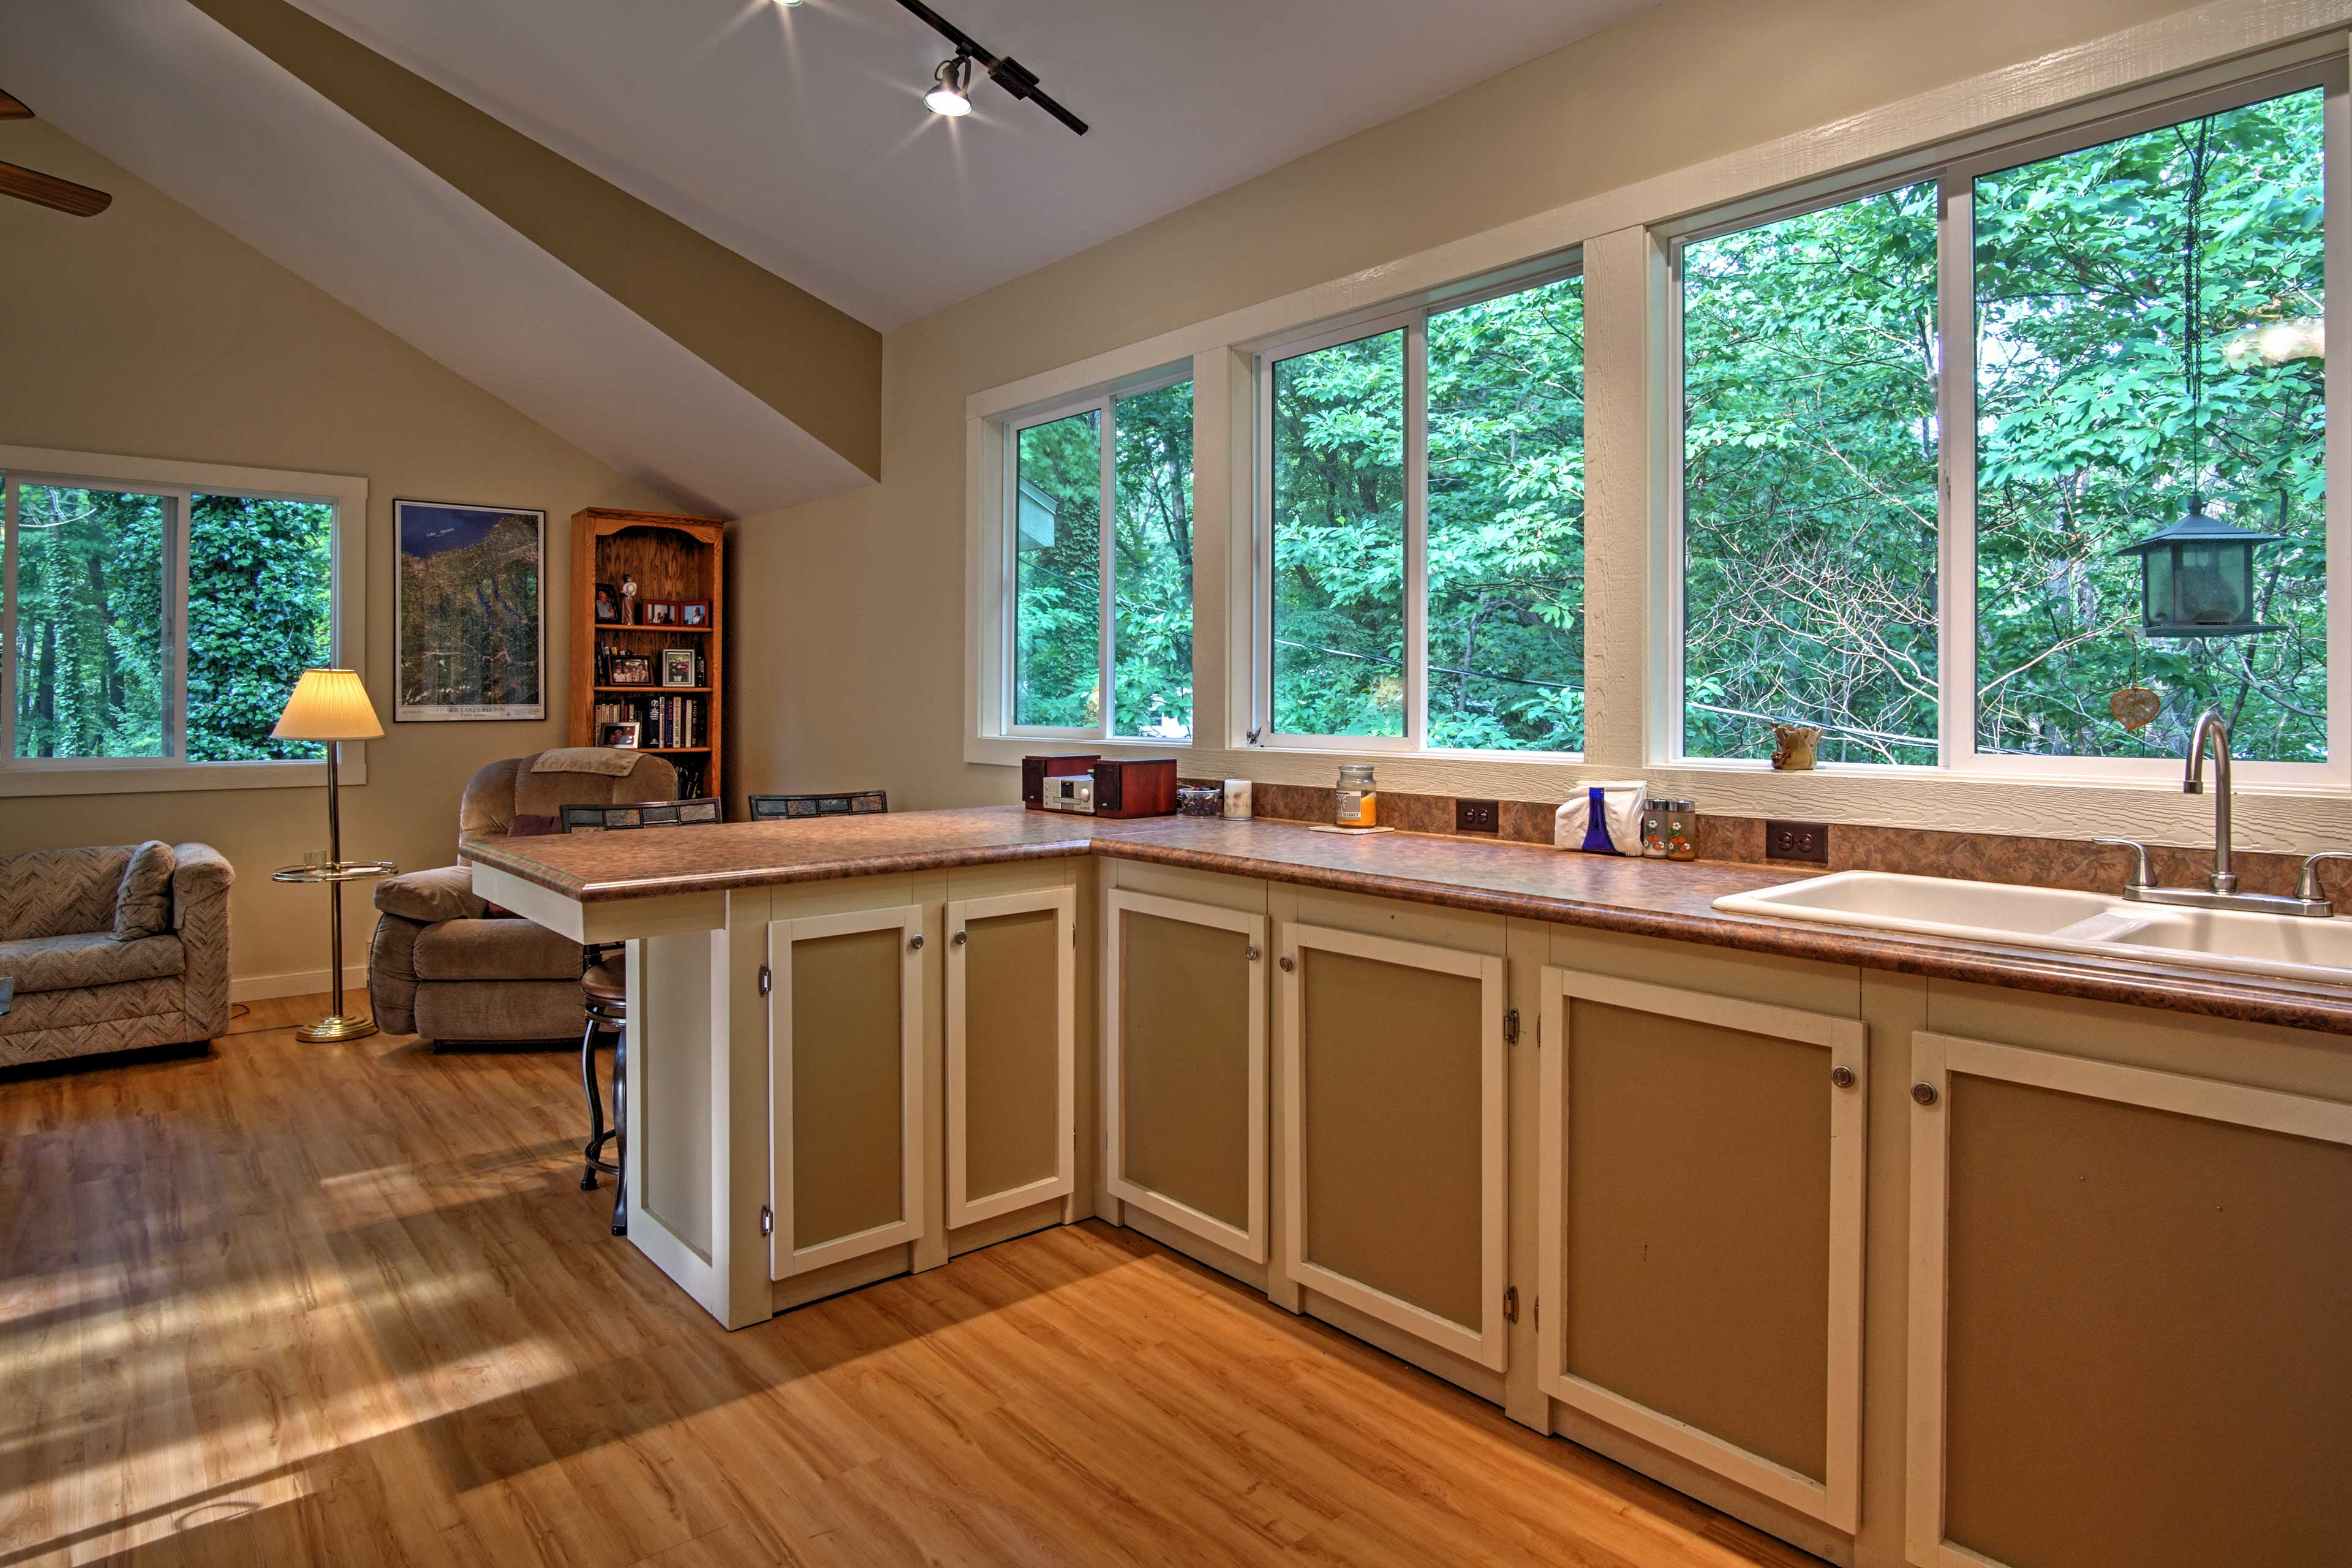 Admire the splendid views out the kitchen windows.